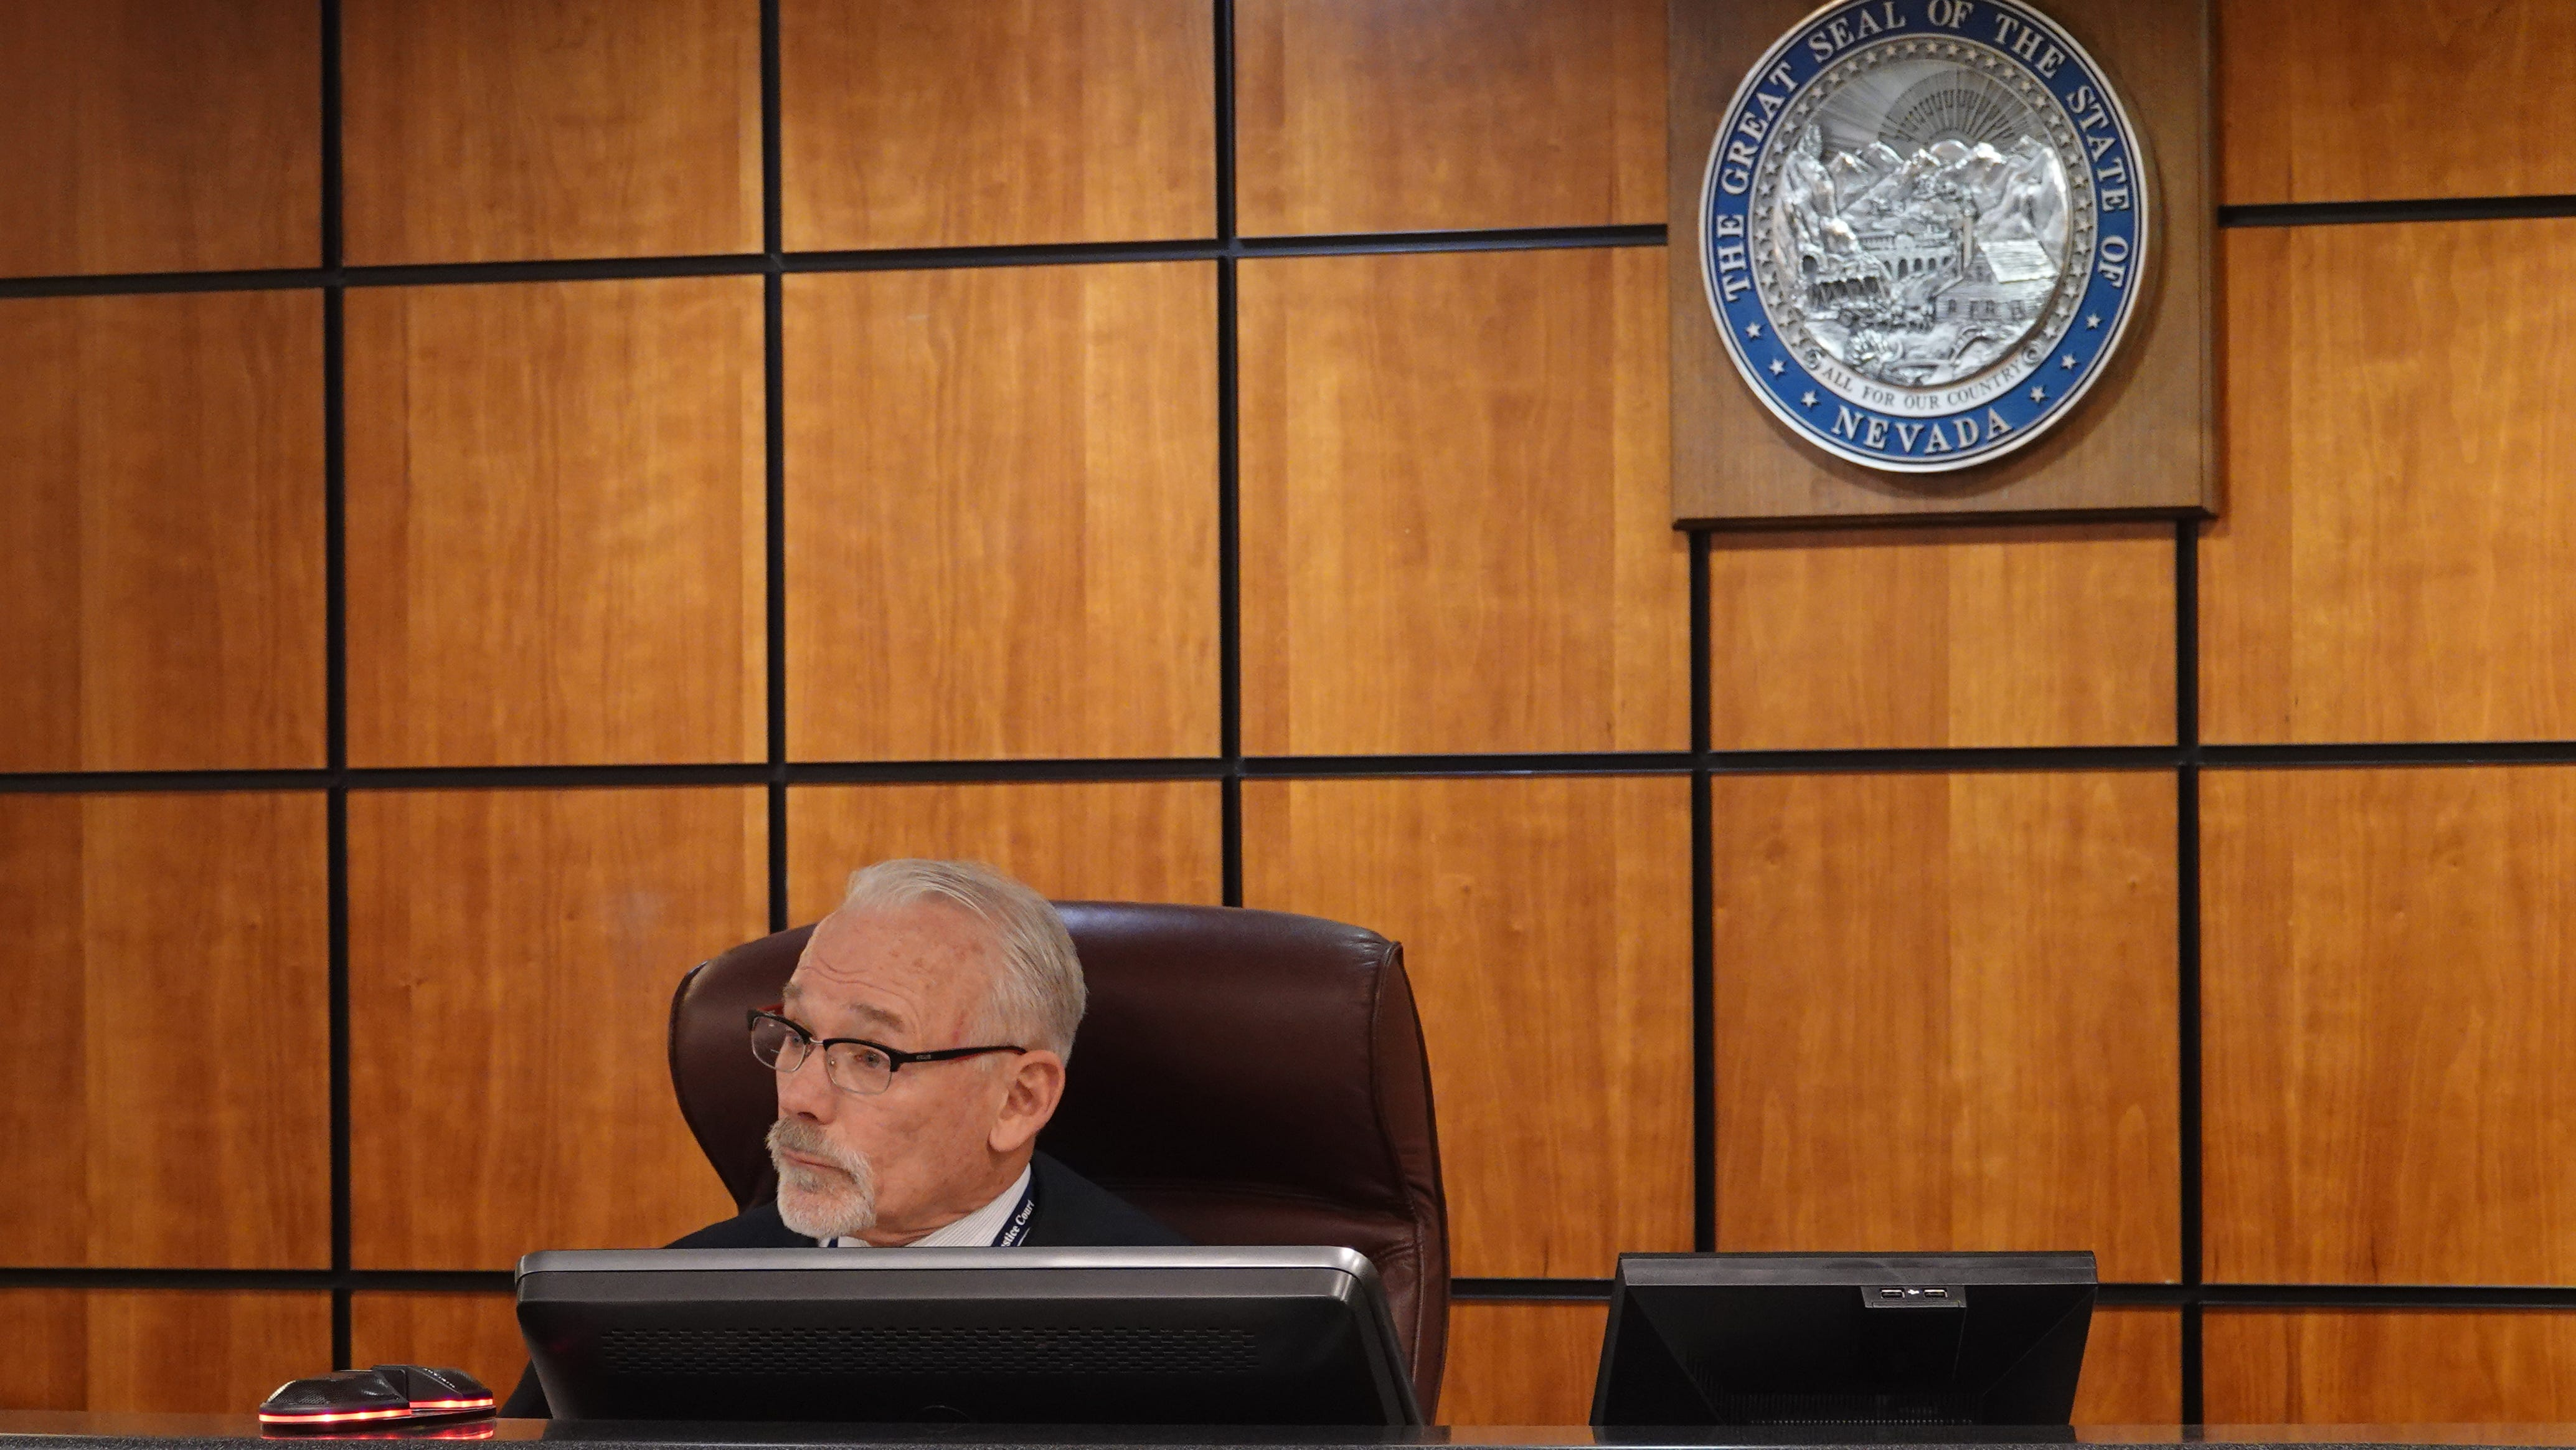 Judge Pierre Hascheff in Reno Justice Court on Dec. 13, 2018. Hascheff ordered an animal rights activist to stay away from a state bear biologist.